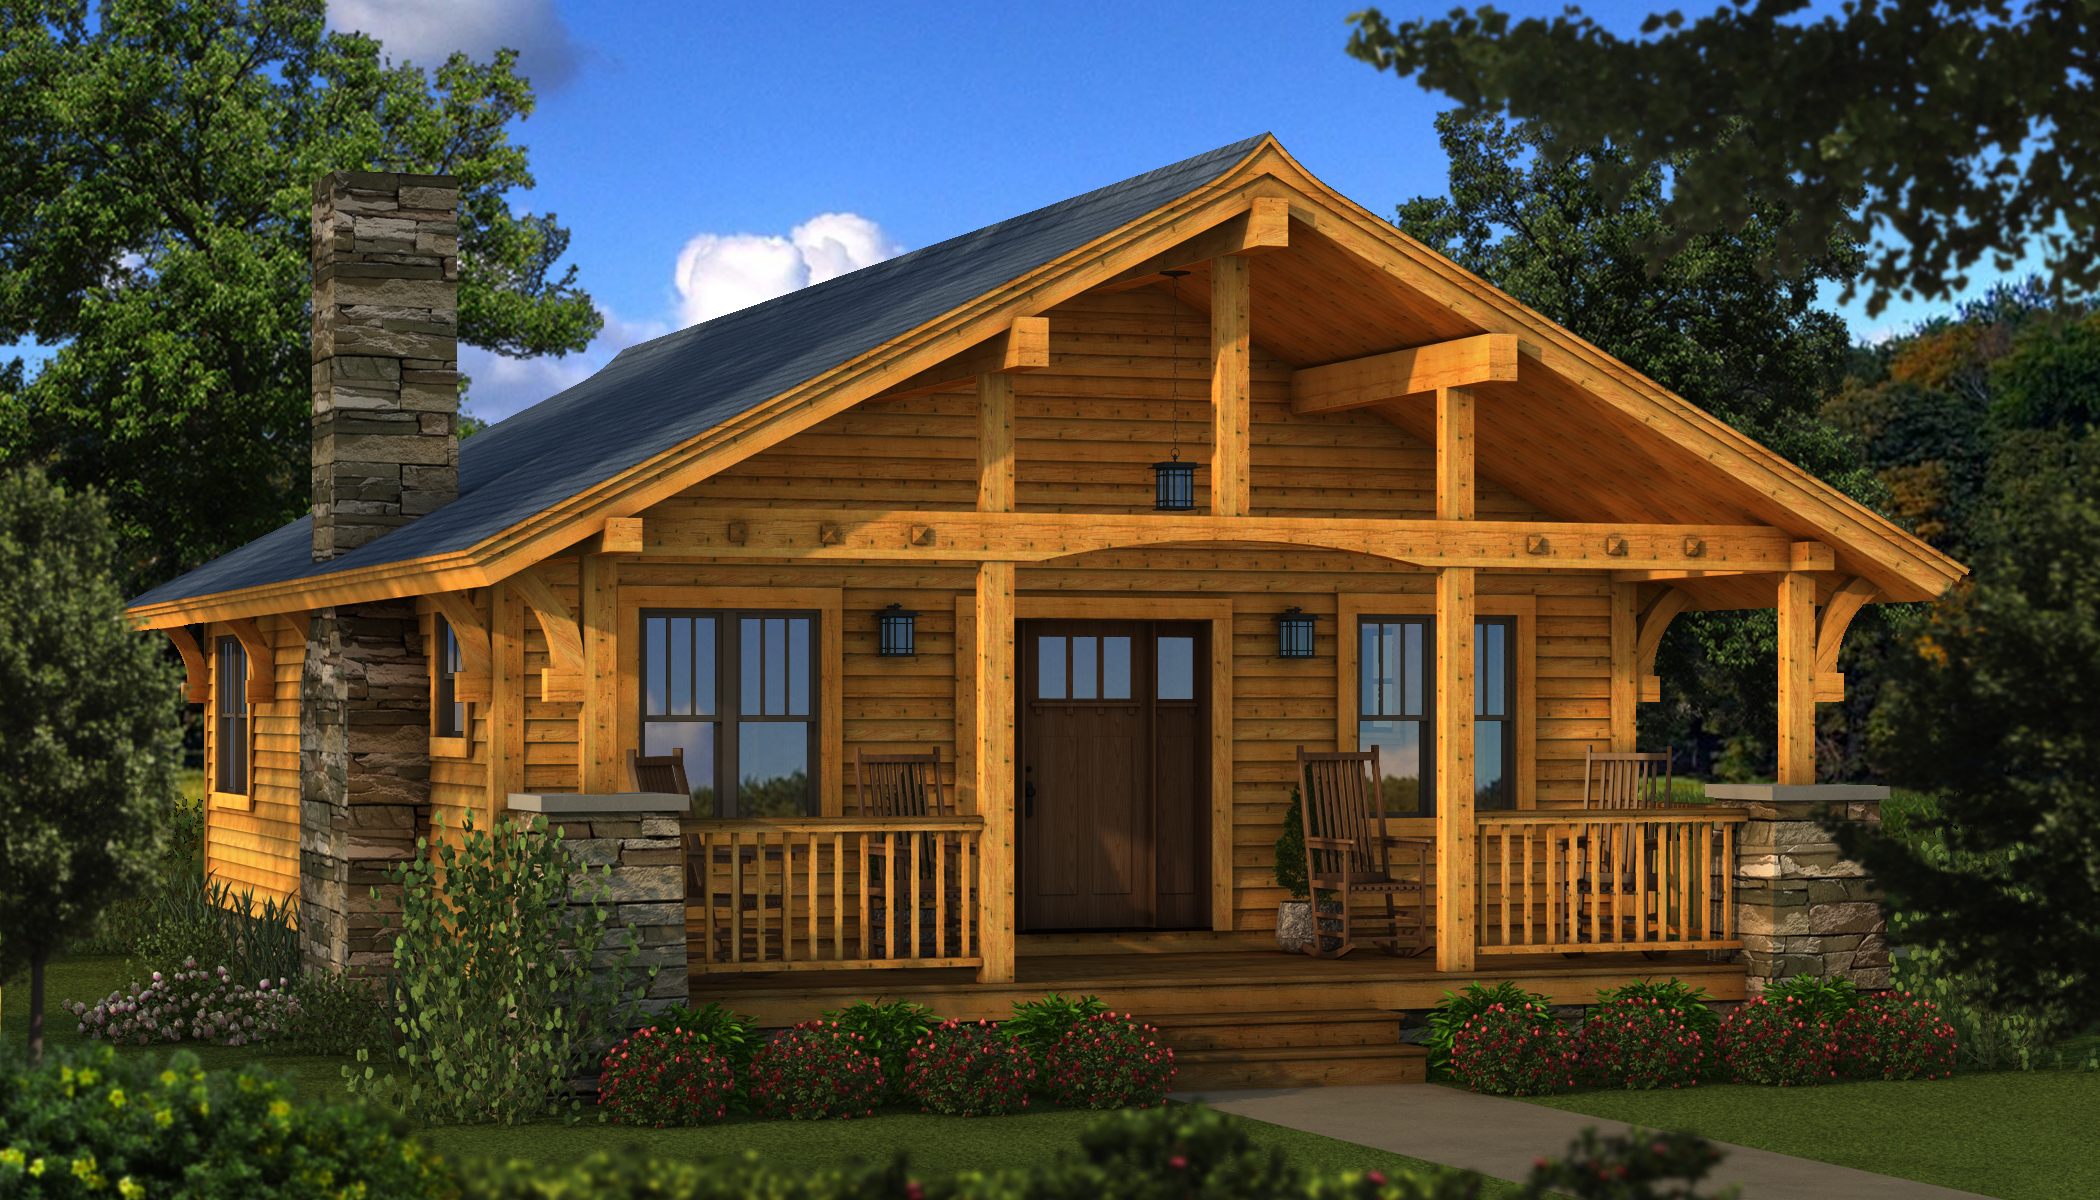 Tiny Log Home Designs: Bungalow 2 – Plans & Information